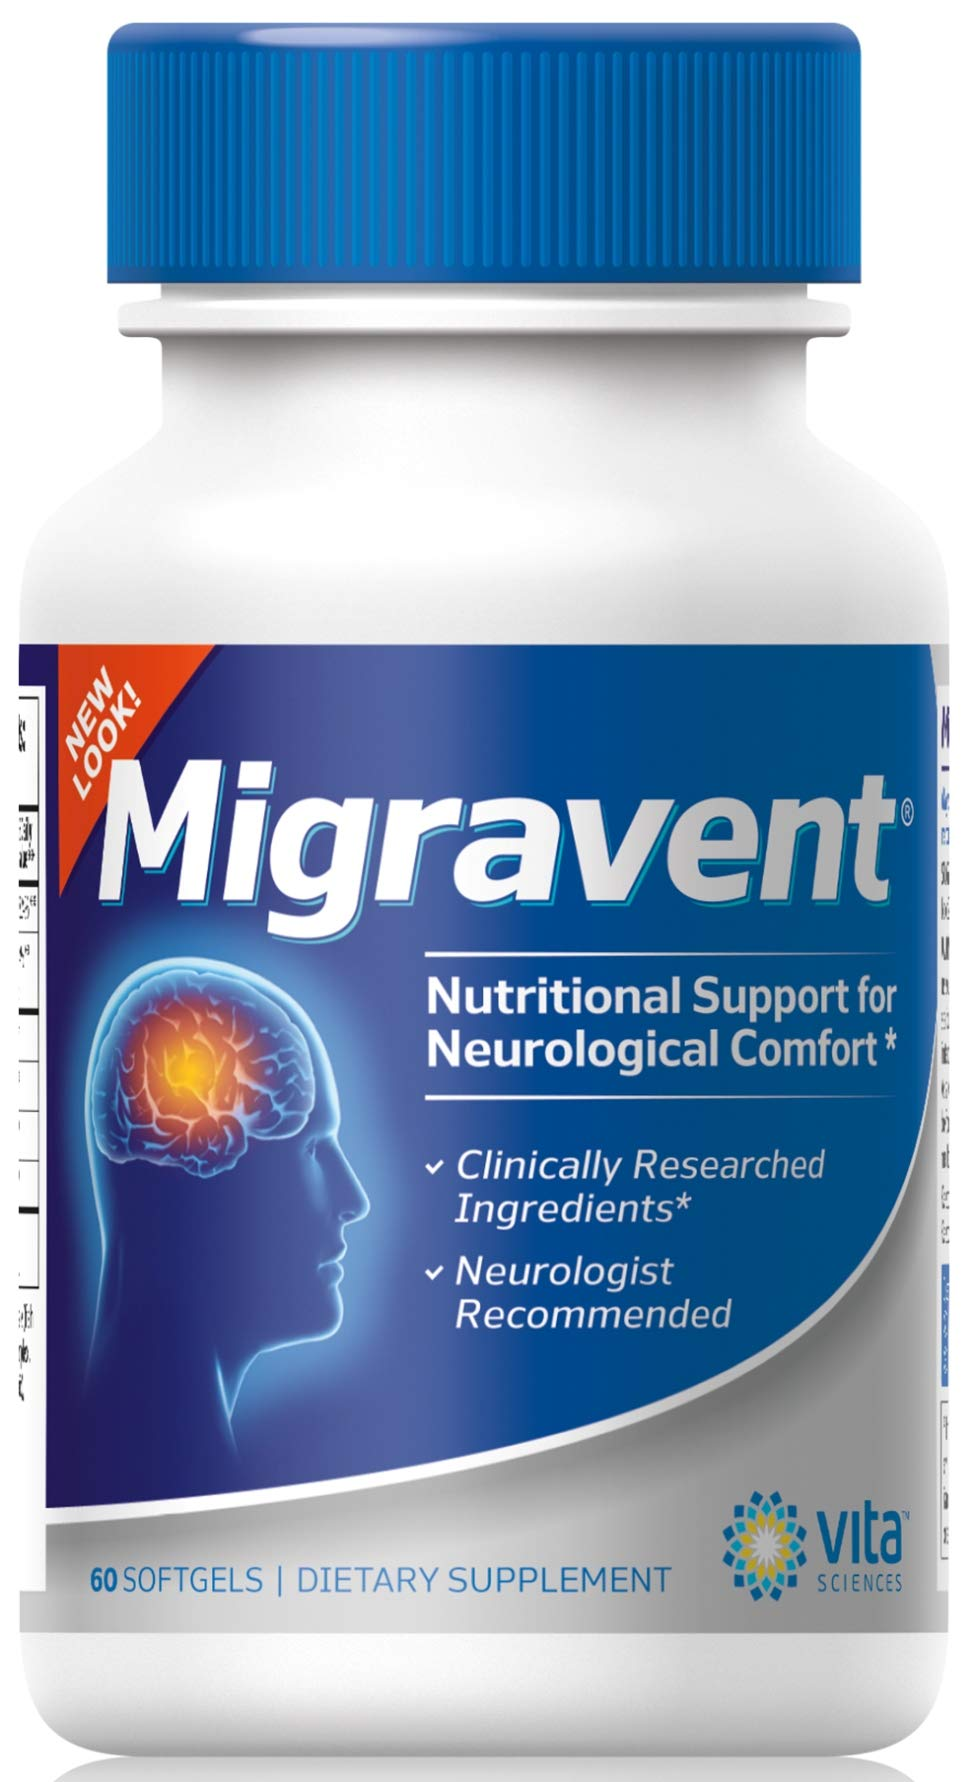 Migraine Relief - Advanced Powerful Supplement for Migraines & Headaches | Neurologists & Doctor Recommended | Natural | Migravent | Migraine Supplement Proprietary Remedy | Vita Sciences | 60 Caps